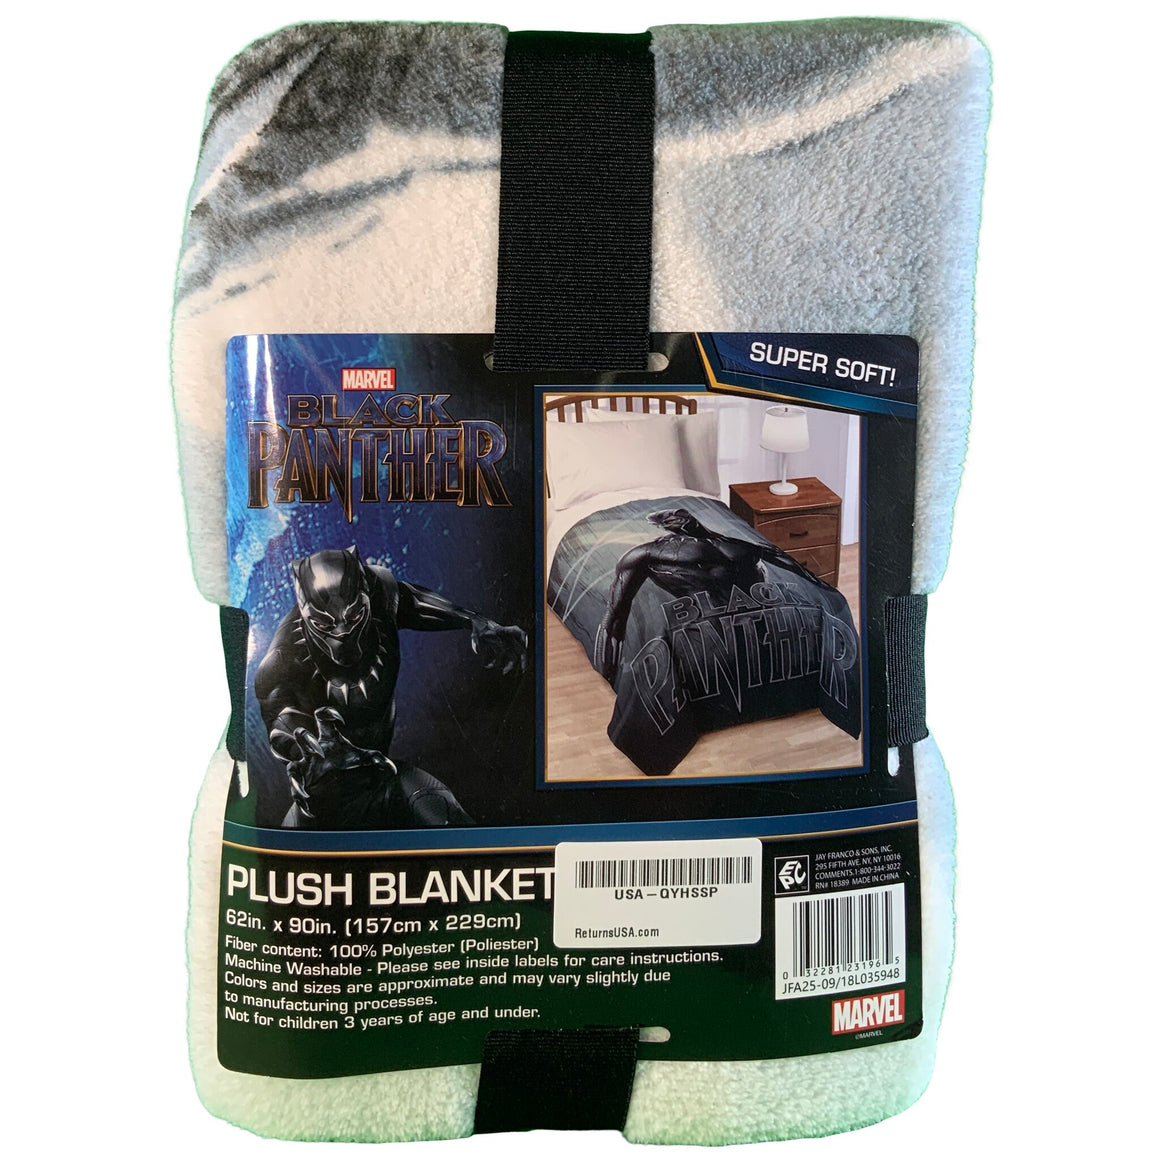 Black Panther Blanket - Marvel